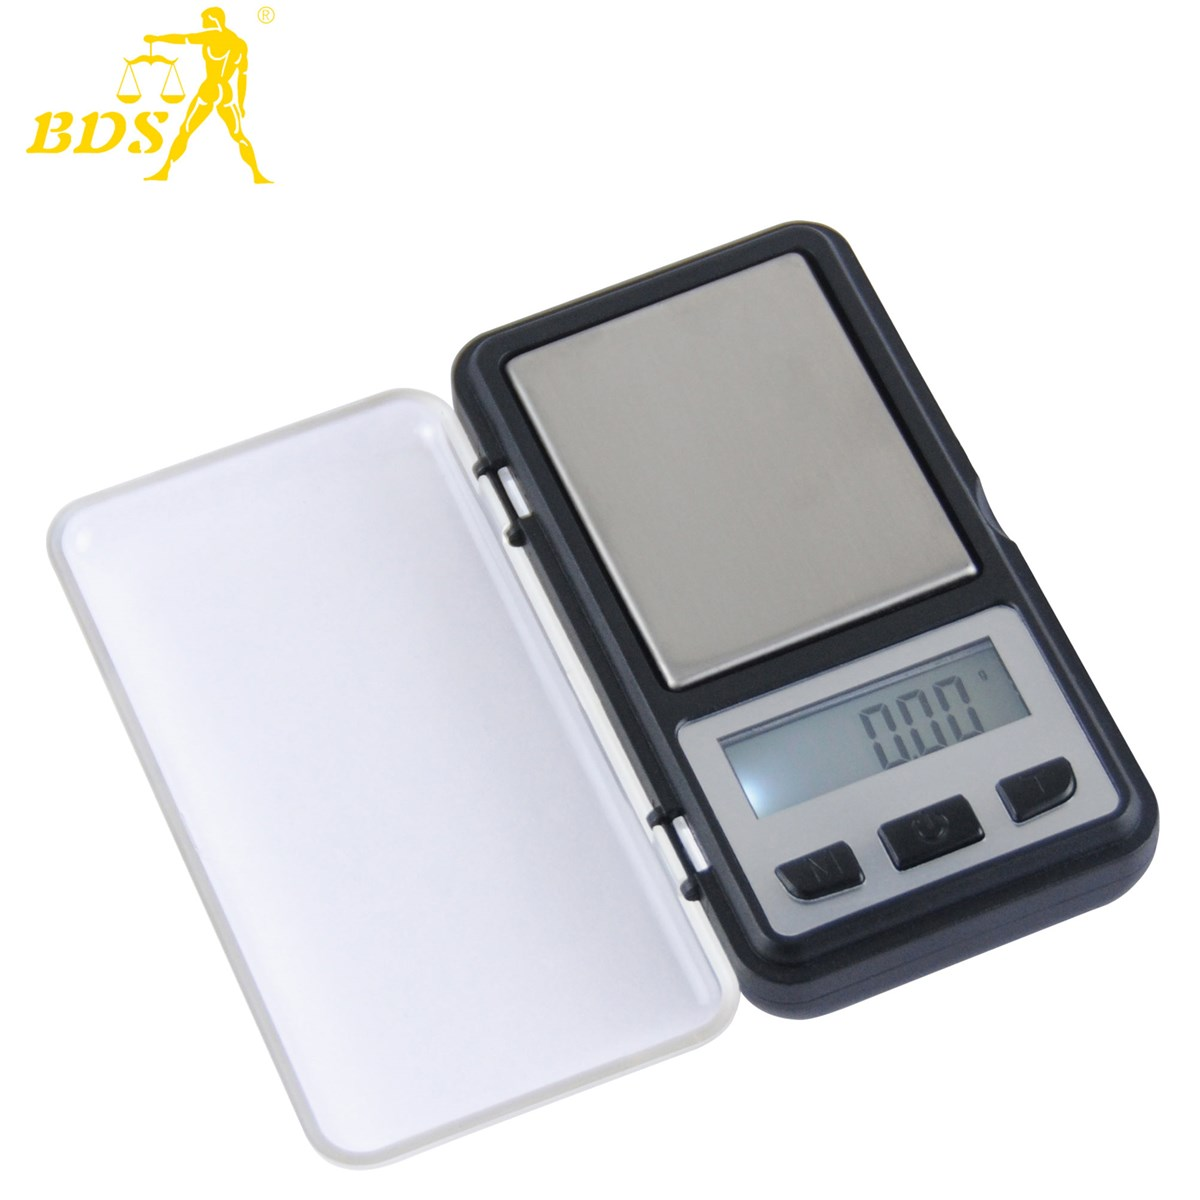 Pocket Scale with Stainless Steel Platform